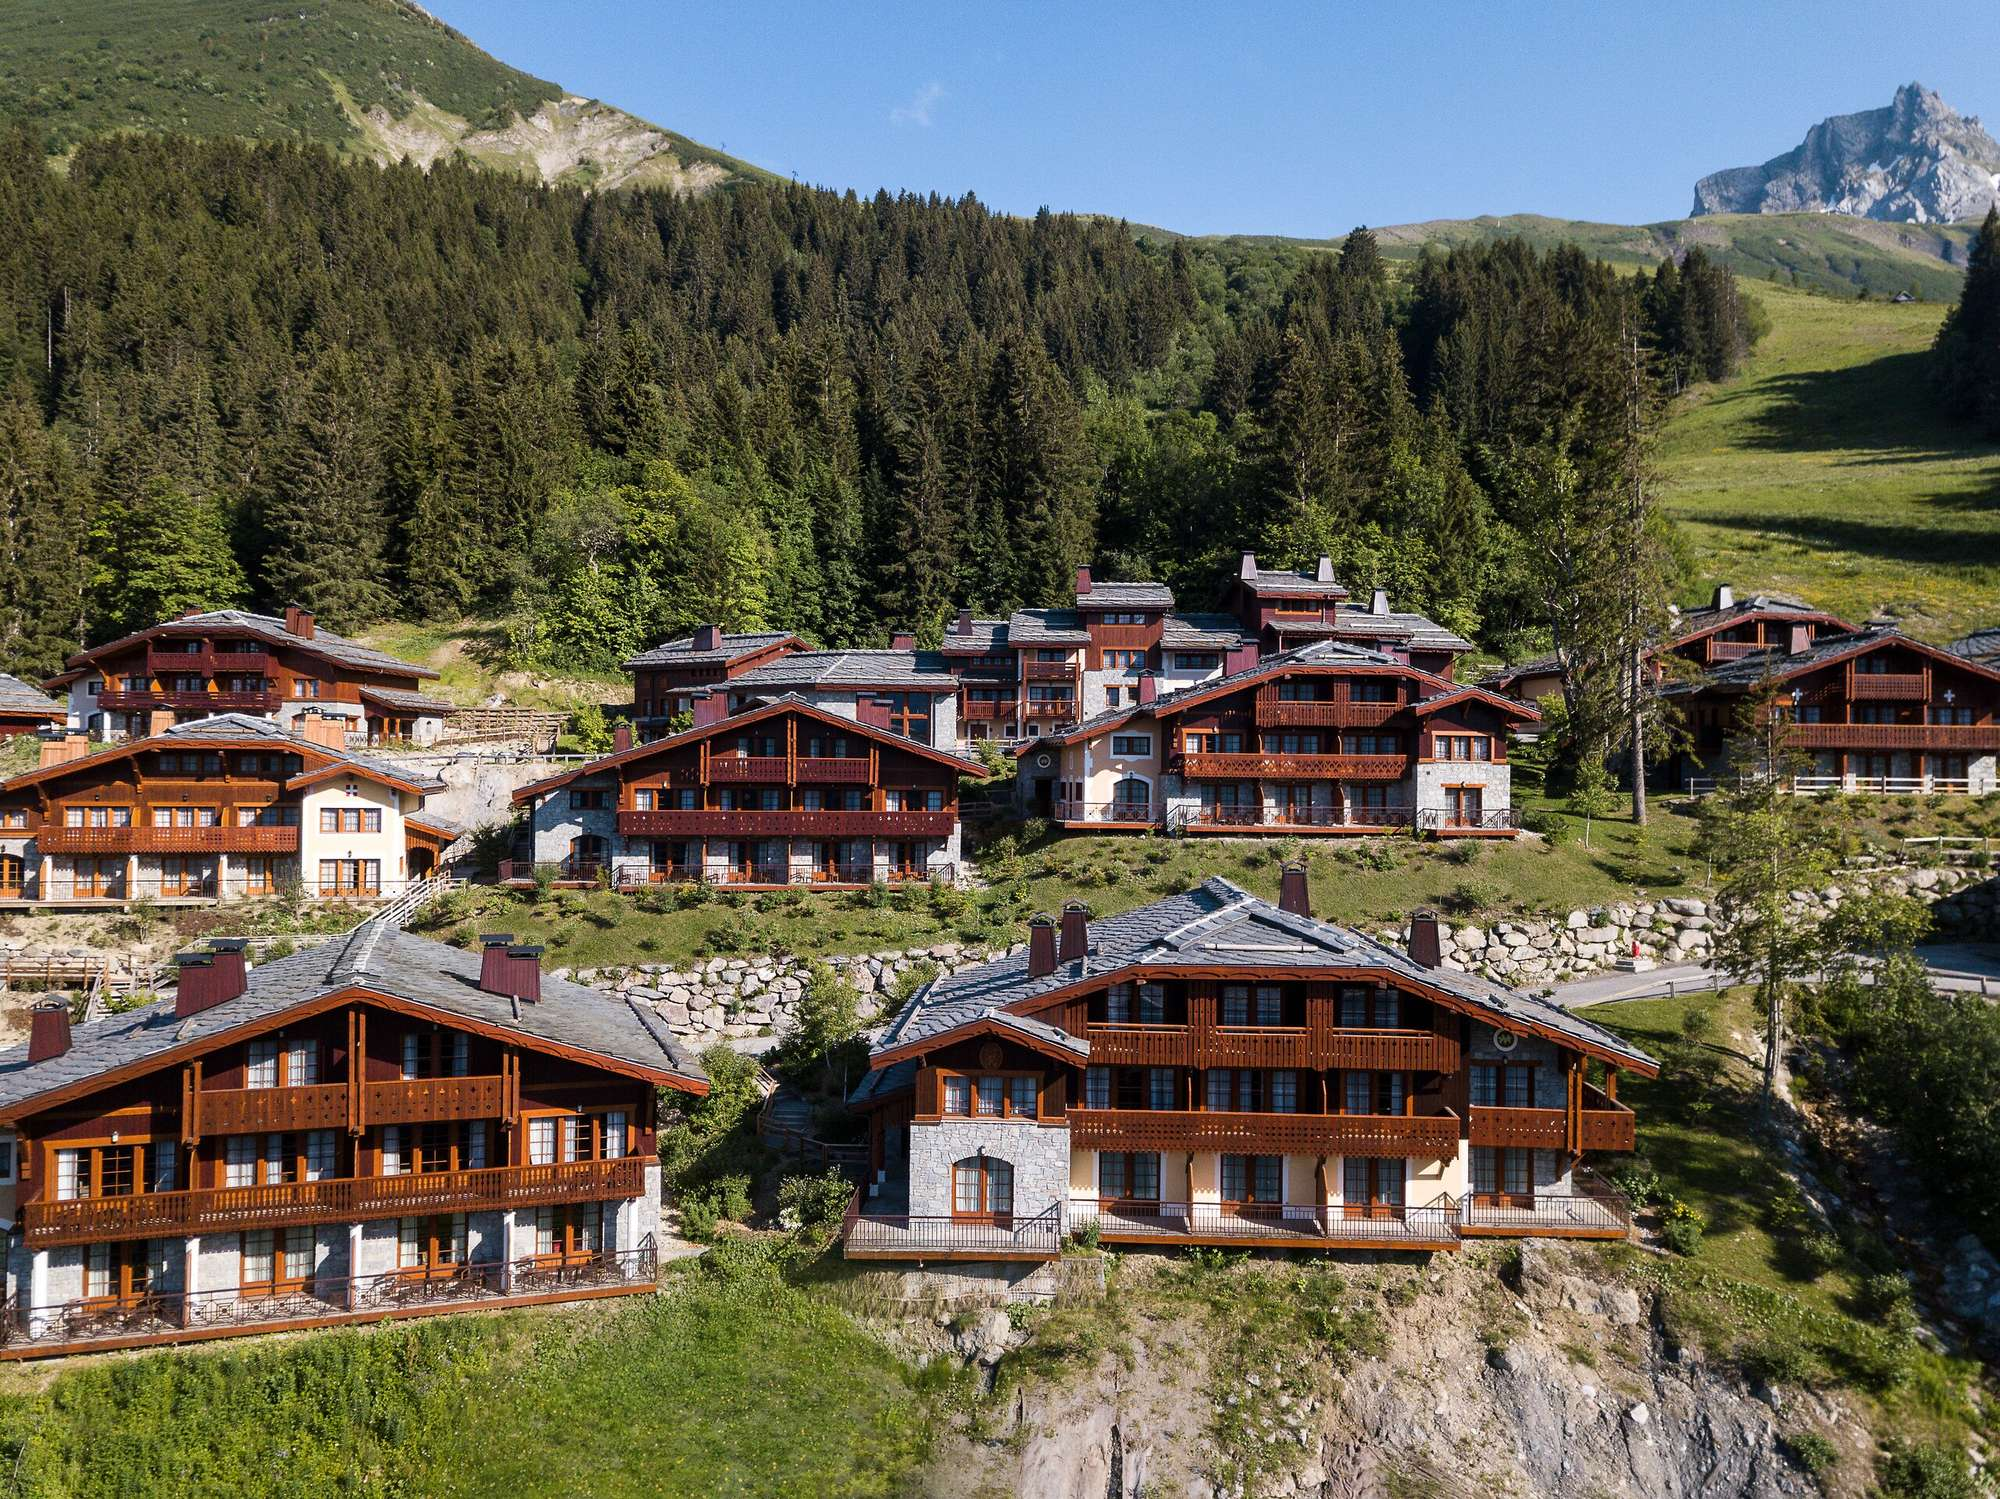 Les Appartements-Chalets de Valmorel